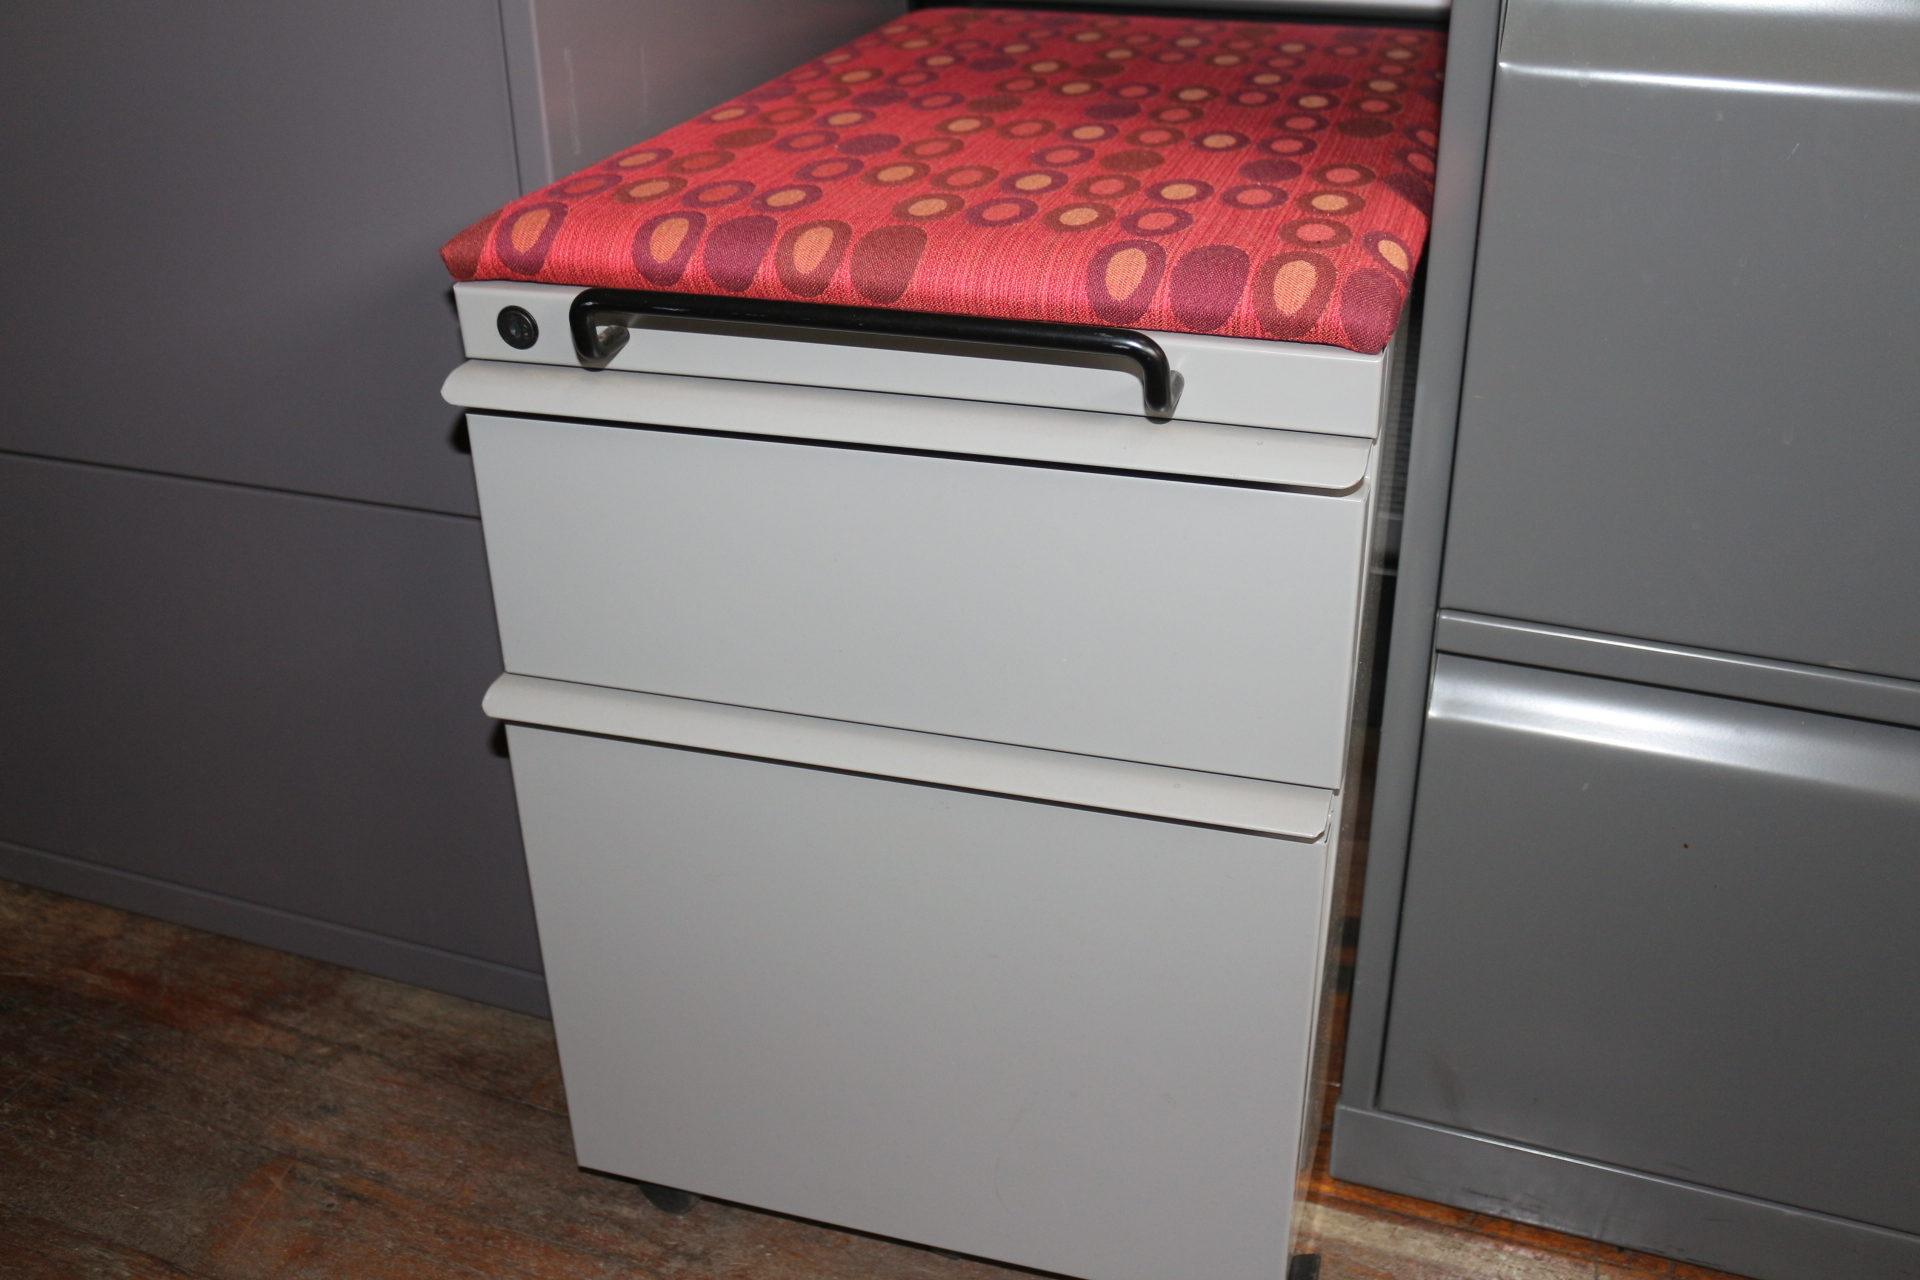 Knoll 2 Drawer Mobile Pedestal File Cabinet with Red Cushion